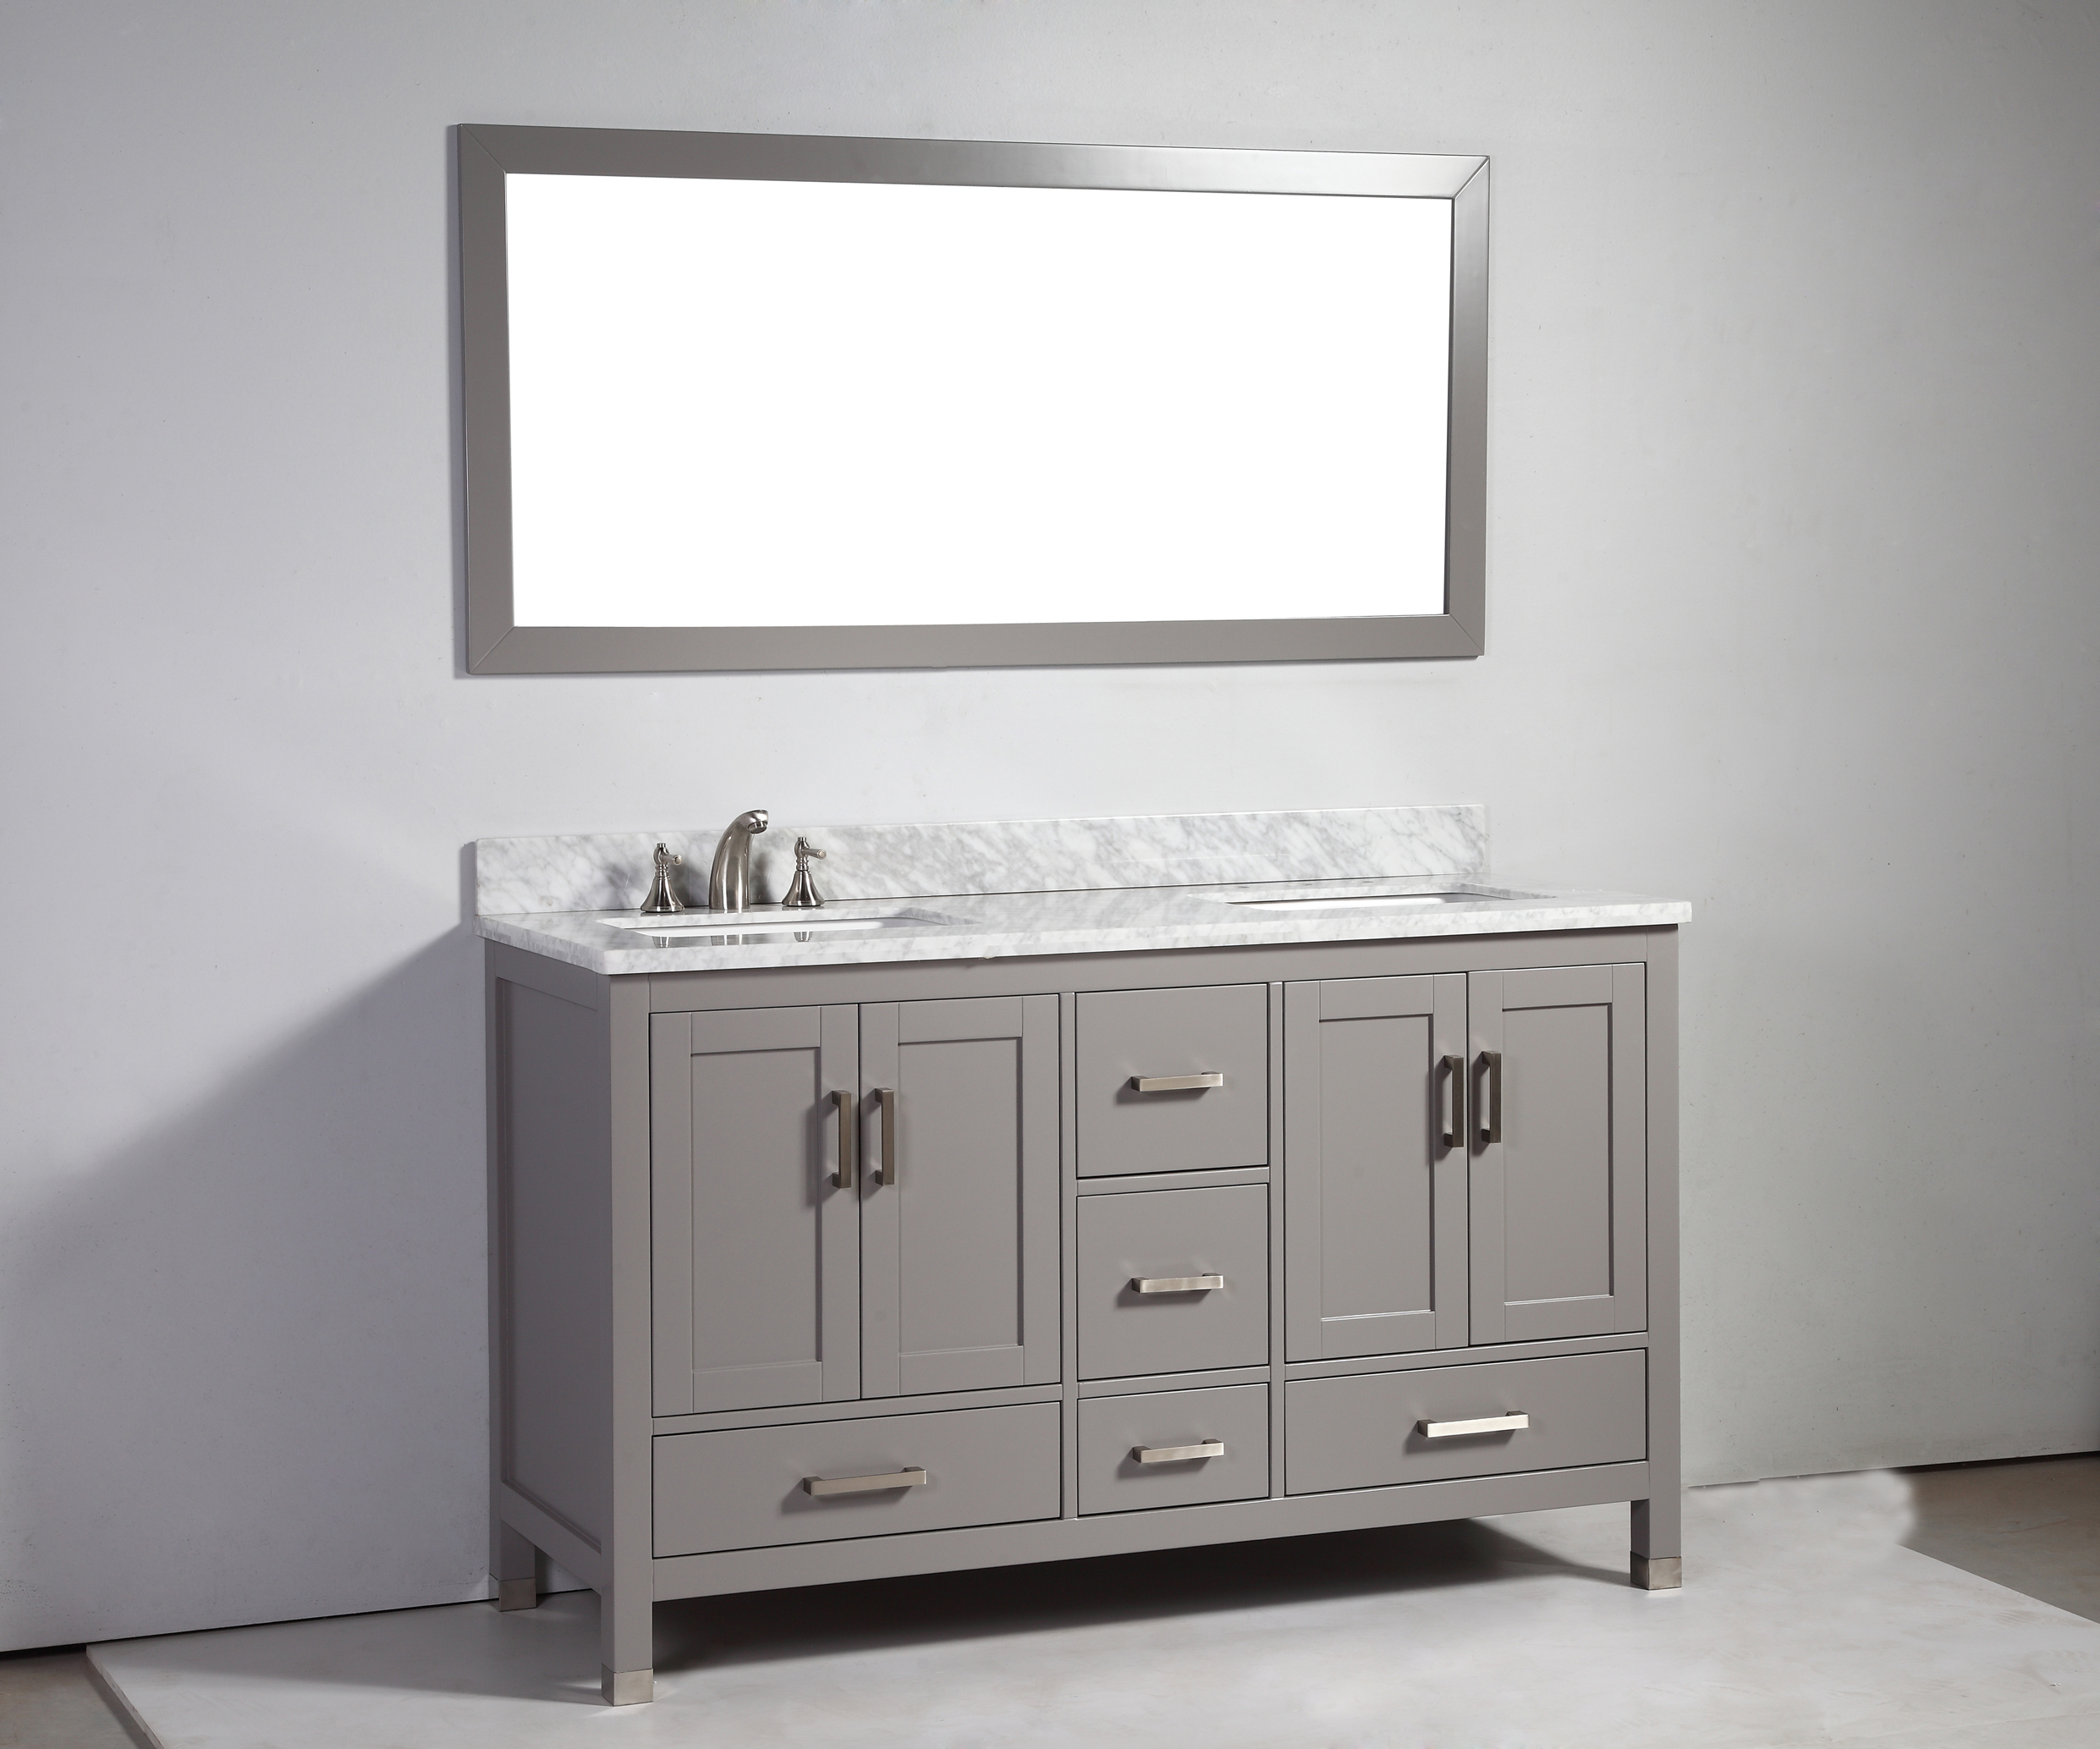 inspirational vanities faucet white matched bathroom tops floor single of sink and on gray ceramics contemporary with inspiring design for cabinets vanity